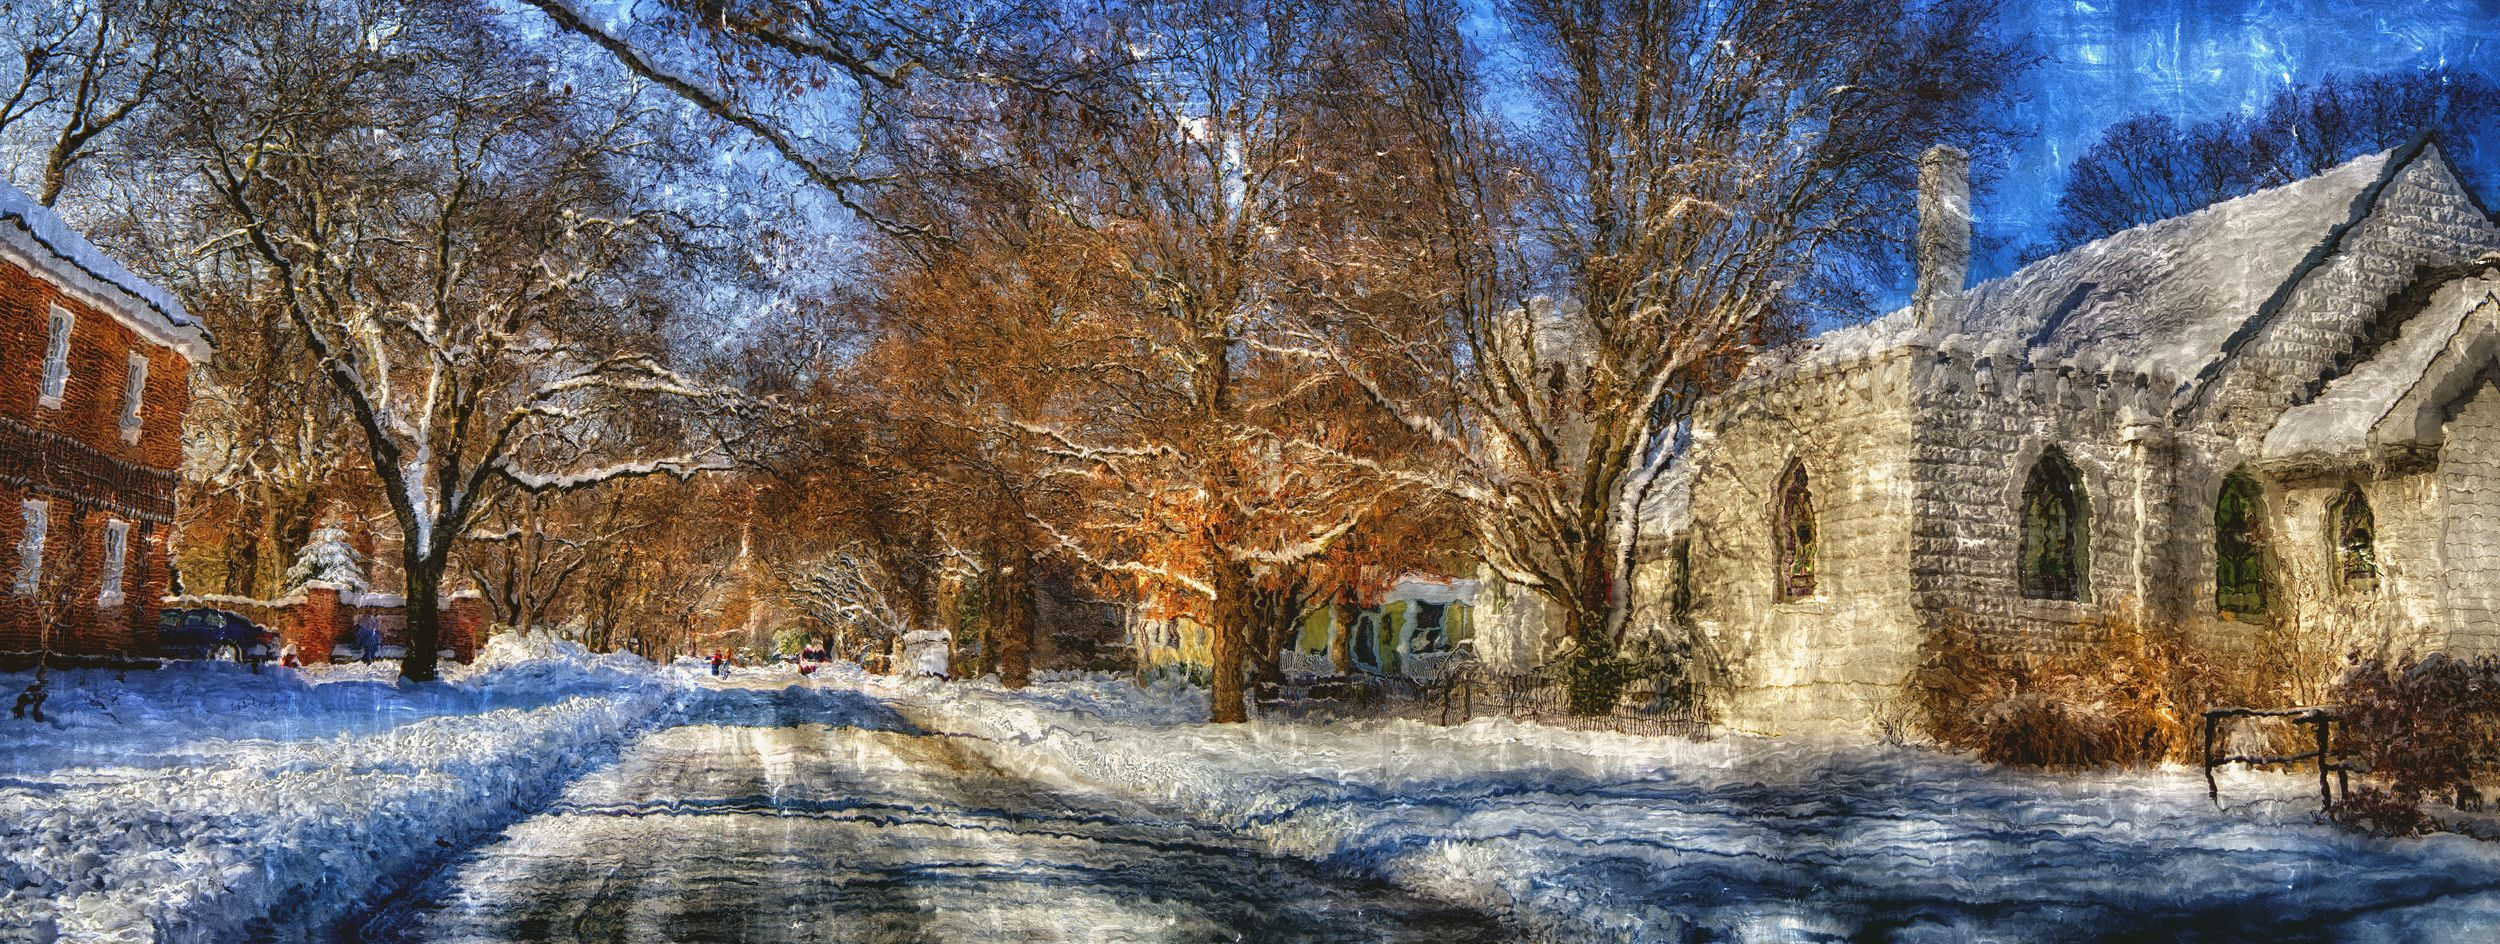 harmony snow church street panoimpressionist.jpg